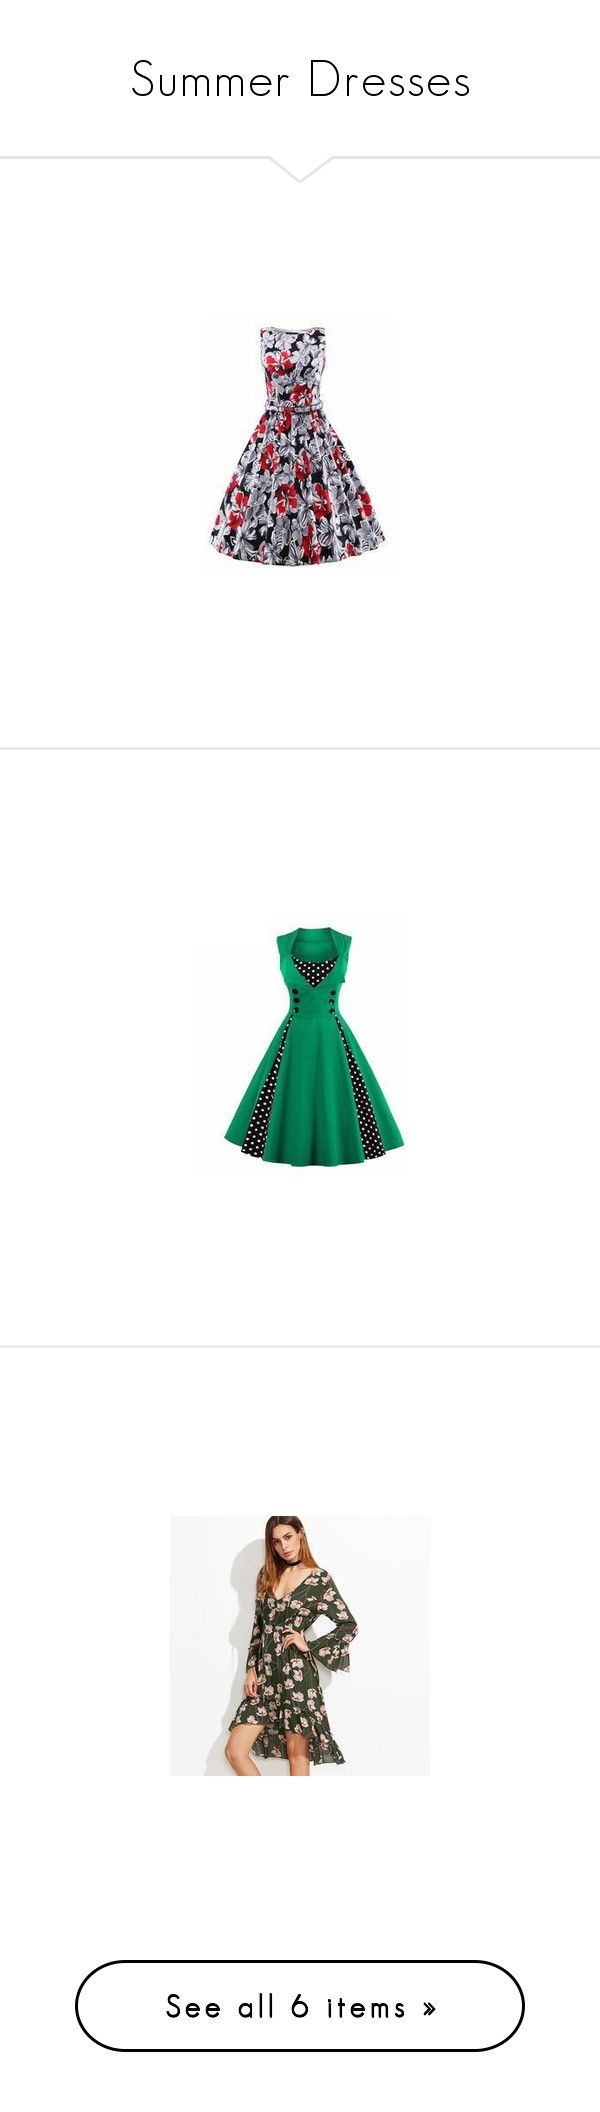 """Summer Dresses"" by hopaalazb on Polyvore featuring tops, plus size party tops, women's plus size tops, plus size tops, going out tops and vintage tops"